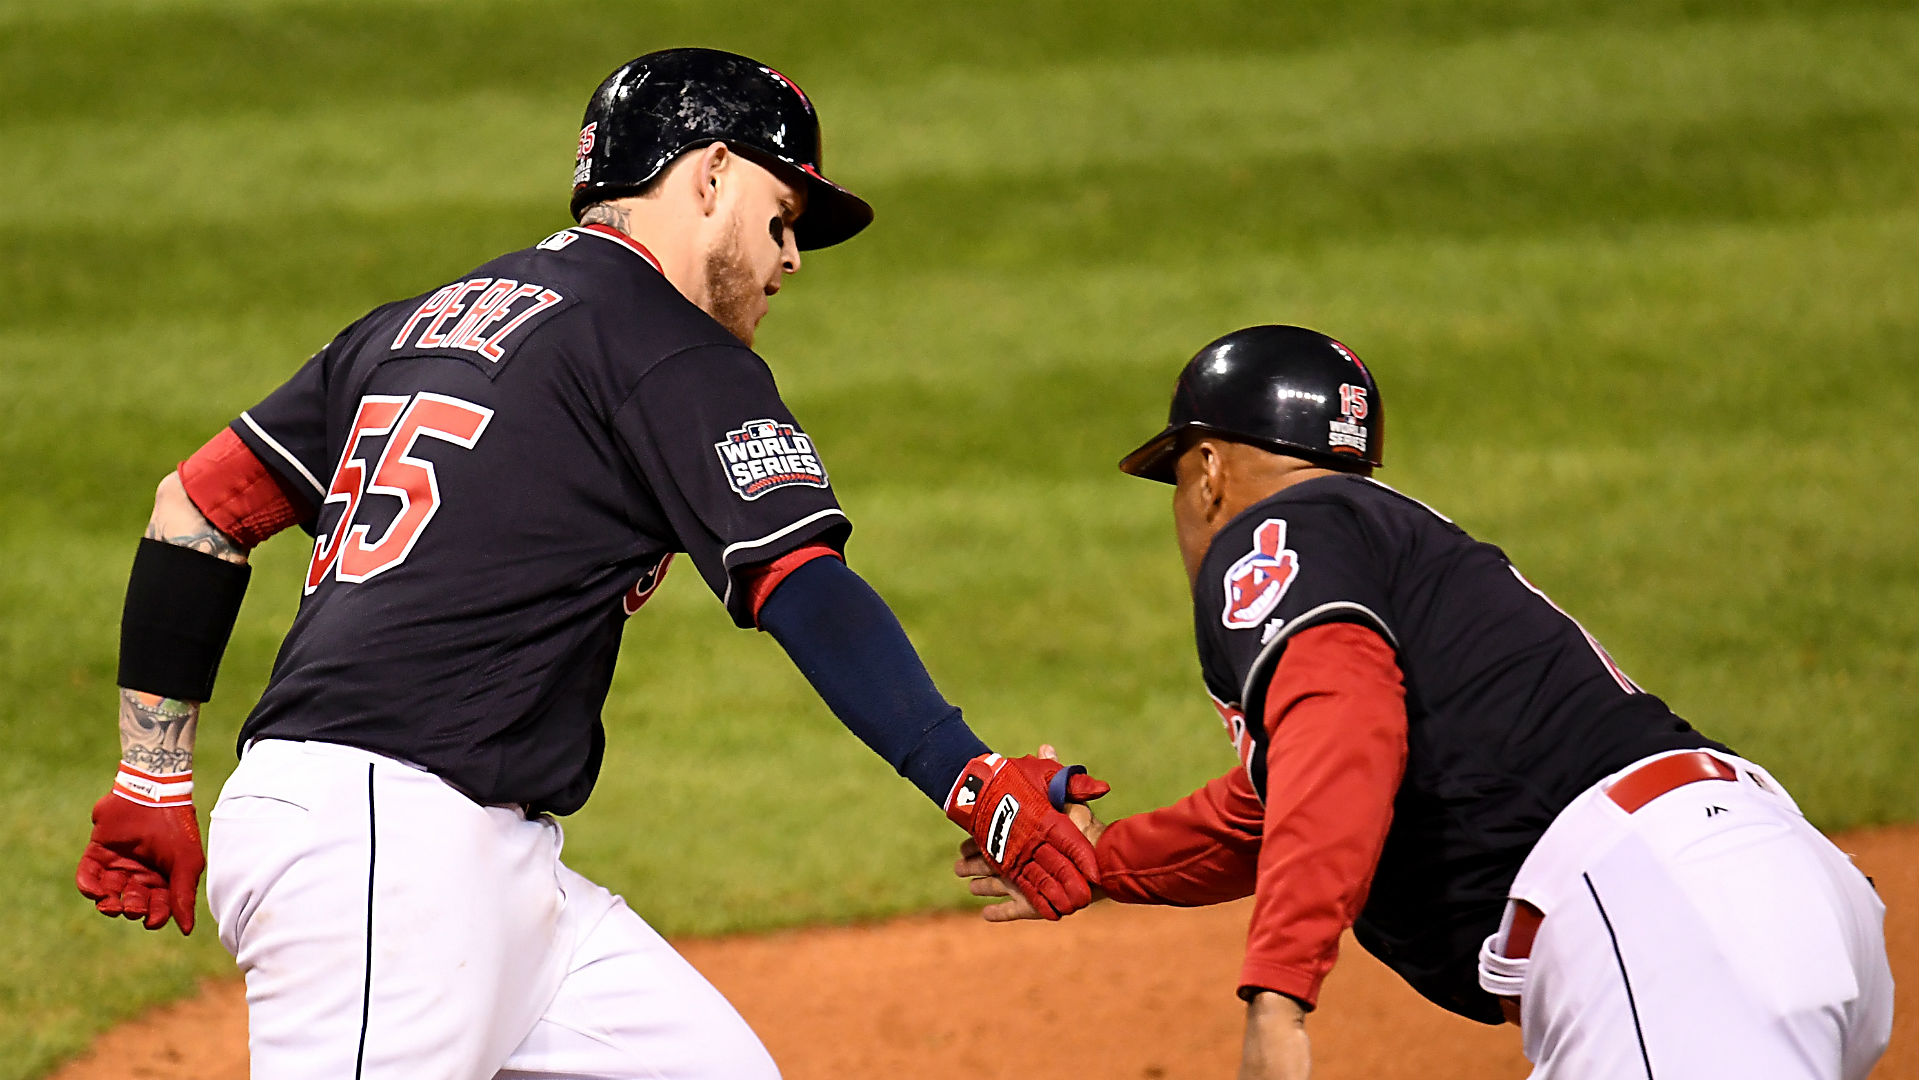 Roberto-perez-indians-world-series-getty-ftrjpg_1lb9ue5nn7edk1vgkswuu7o63p